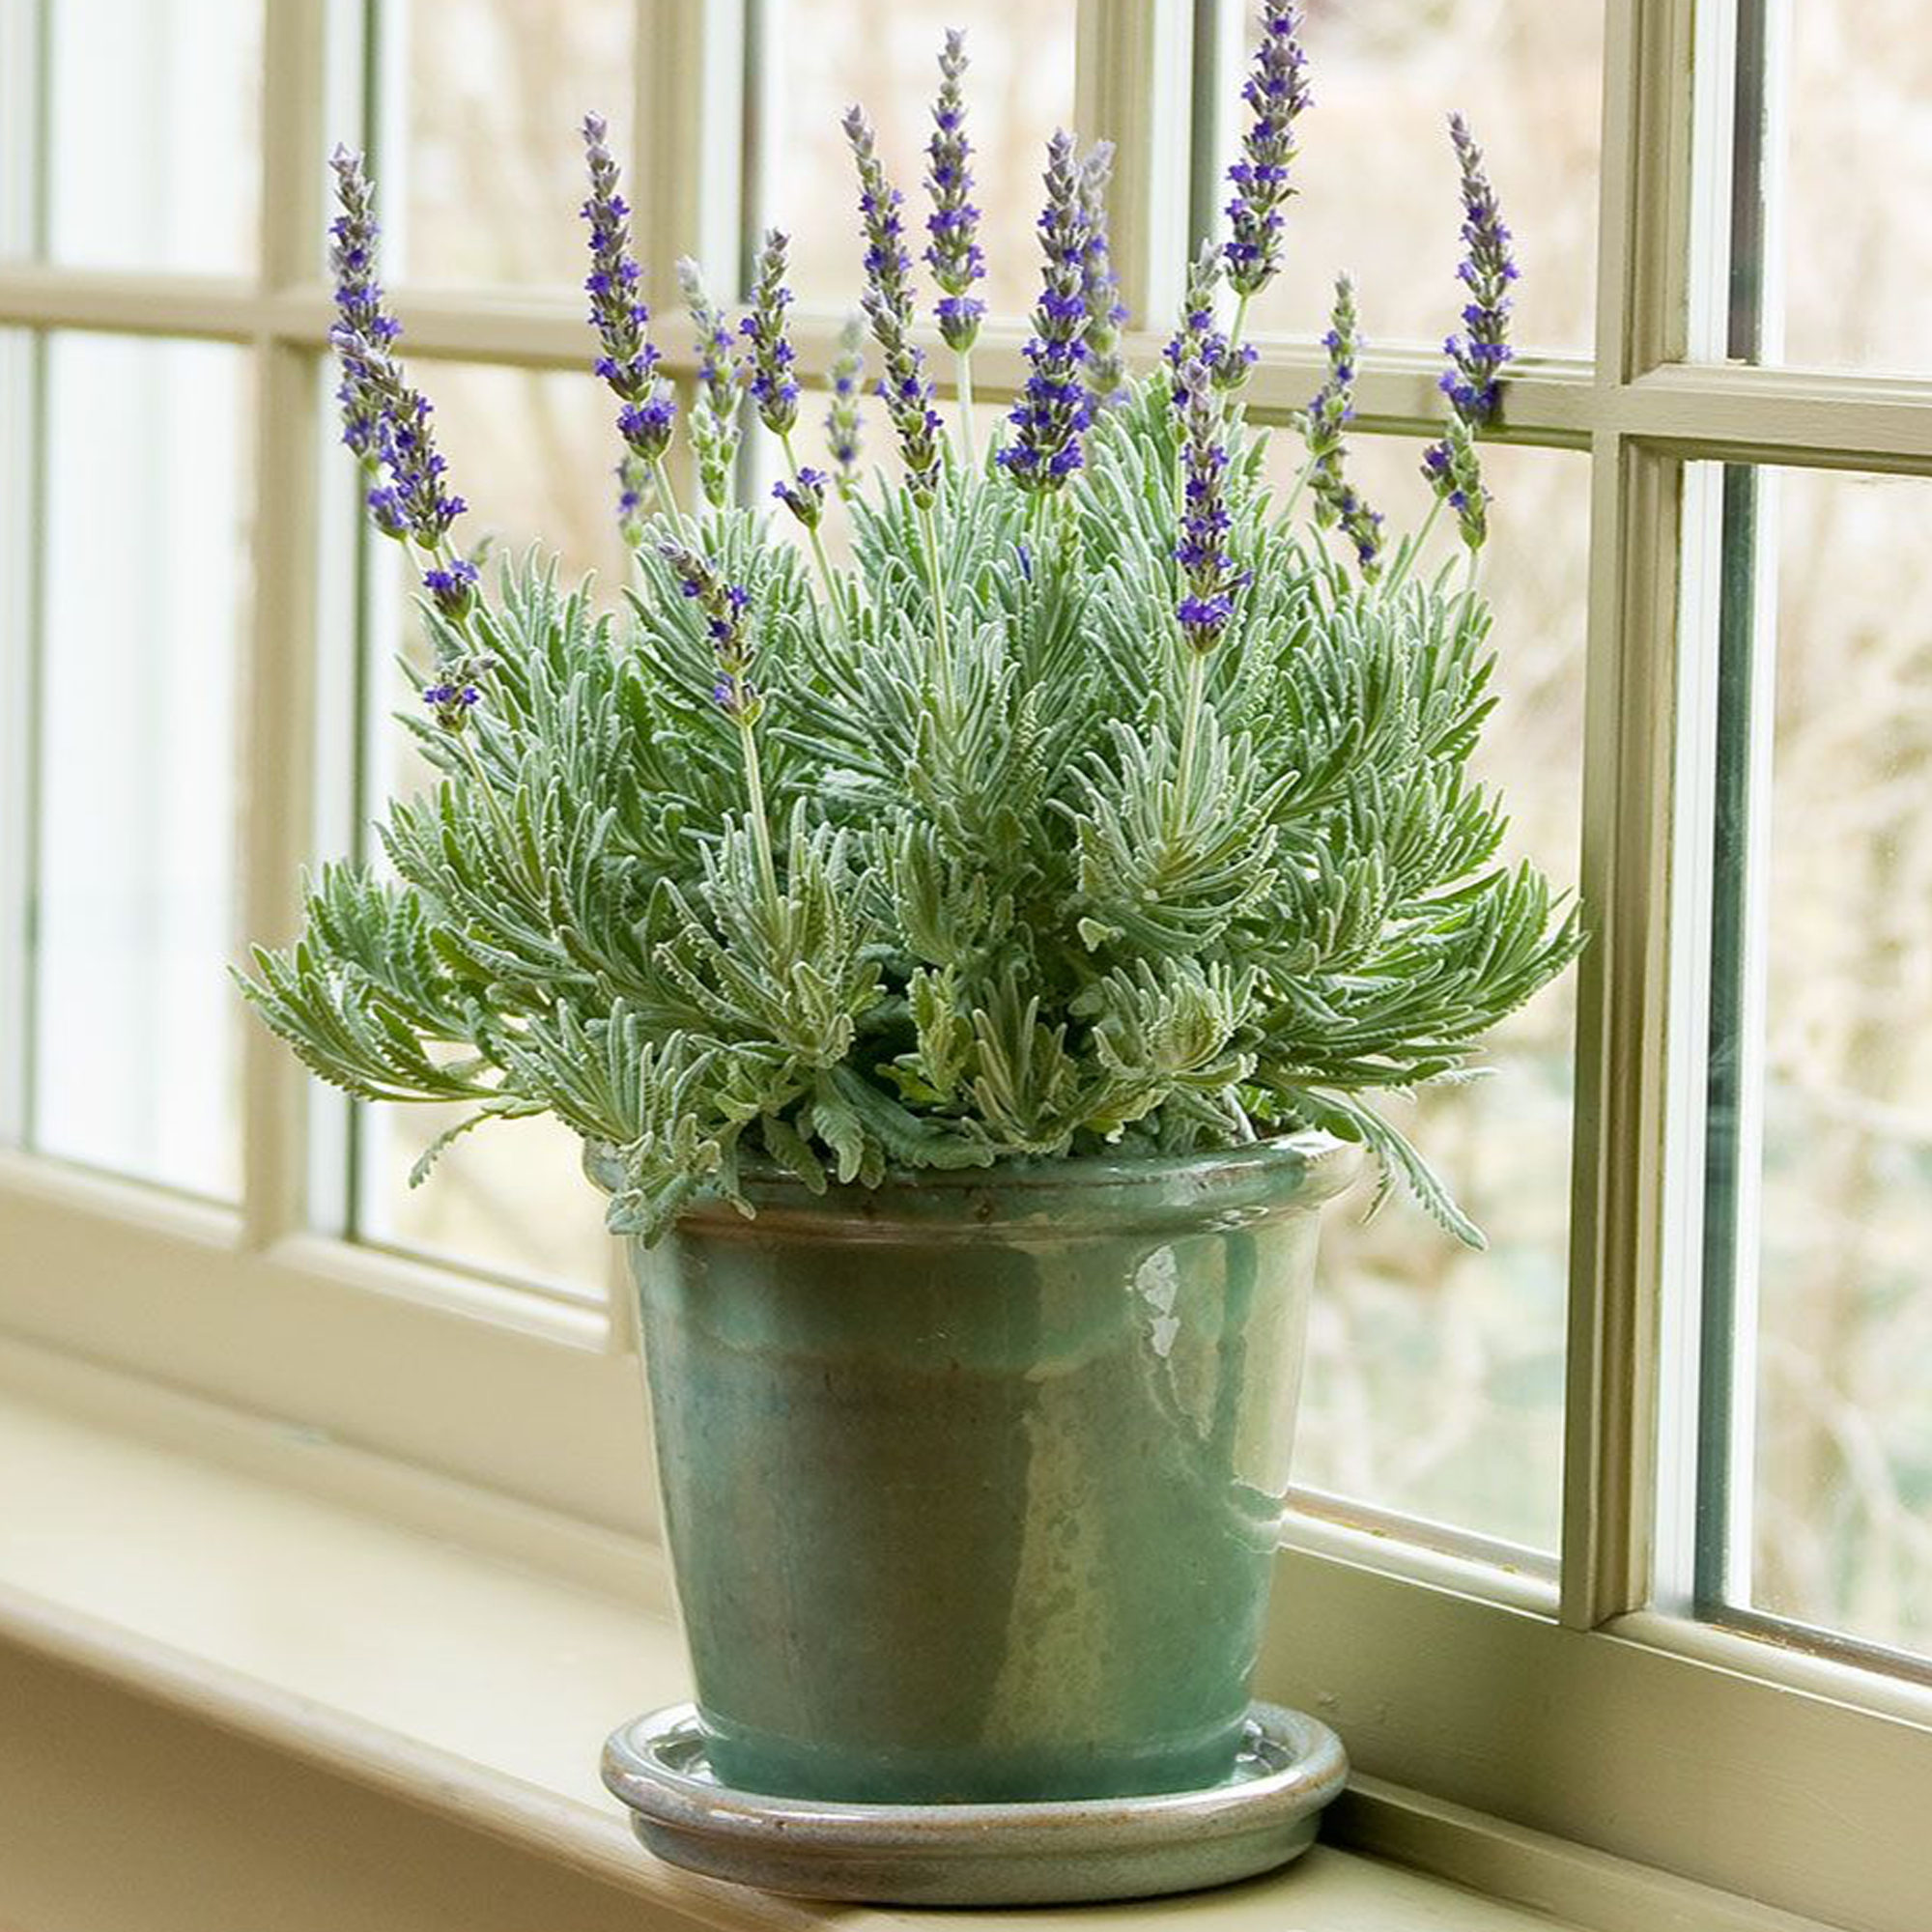 25 House Plants That Detox Your Home Naturally Schneider